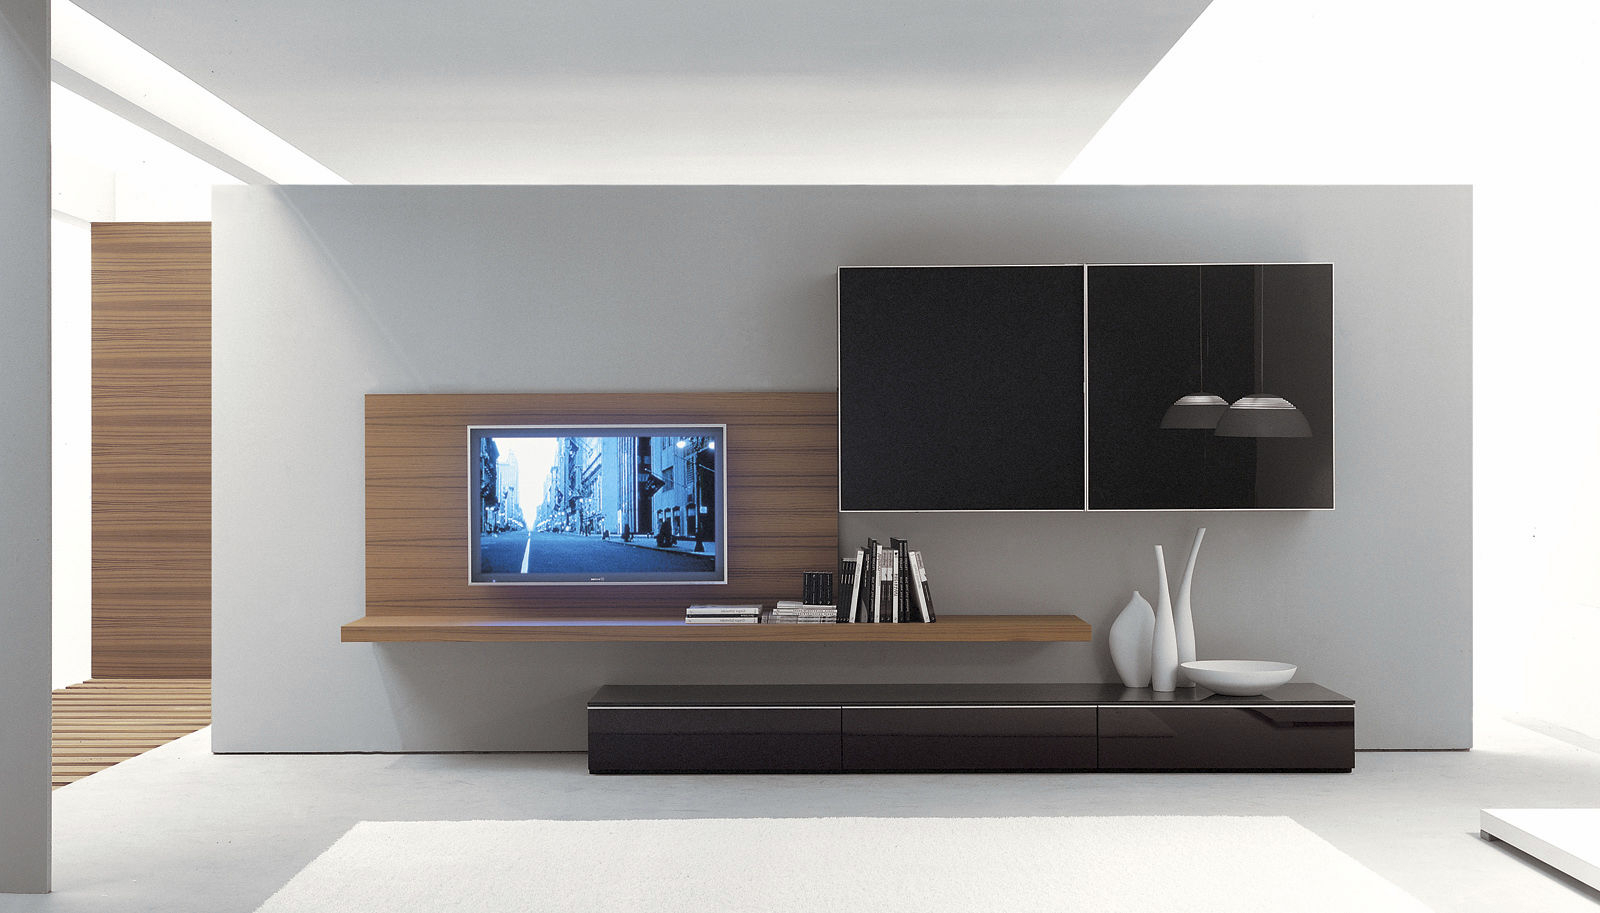 On The Wall Tv Units With Recent Wall Units: Astonishing Ideas On The Wall Tv Units Modern Tv Unit (Gallery 2 of 20)